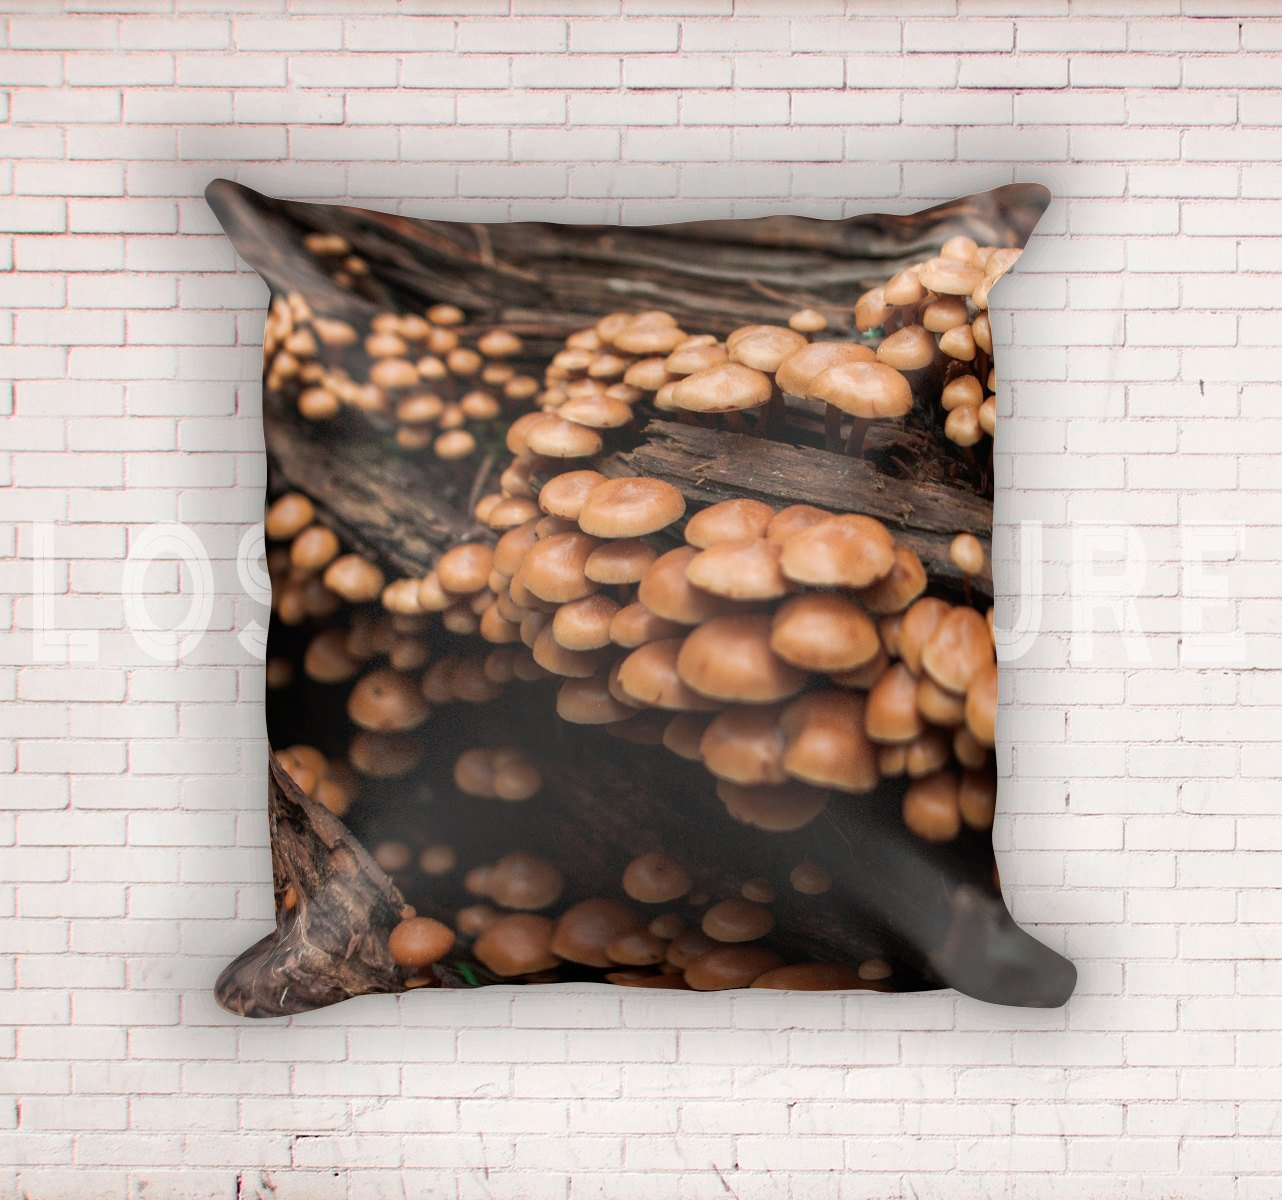 Mushroom Cluster on Redwood Throw Pillow Cover Lost in Nature